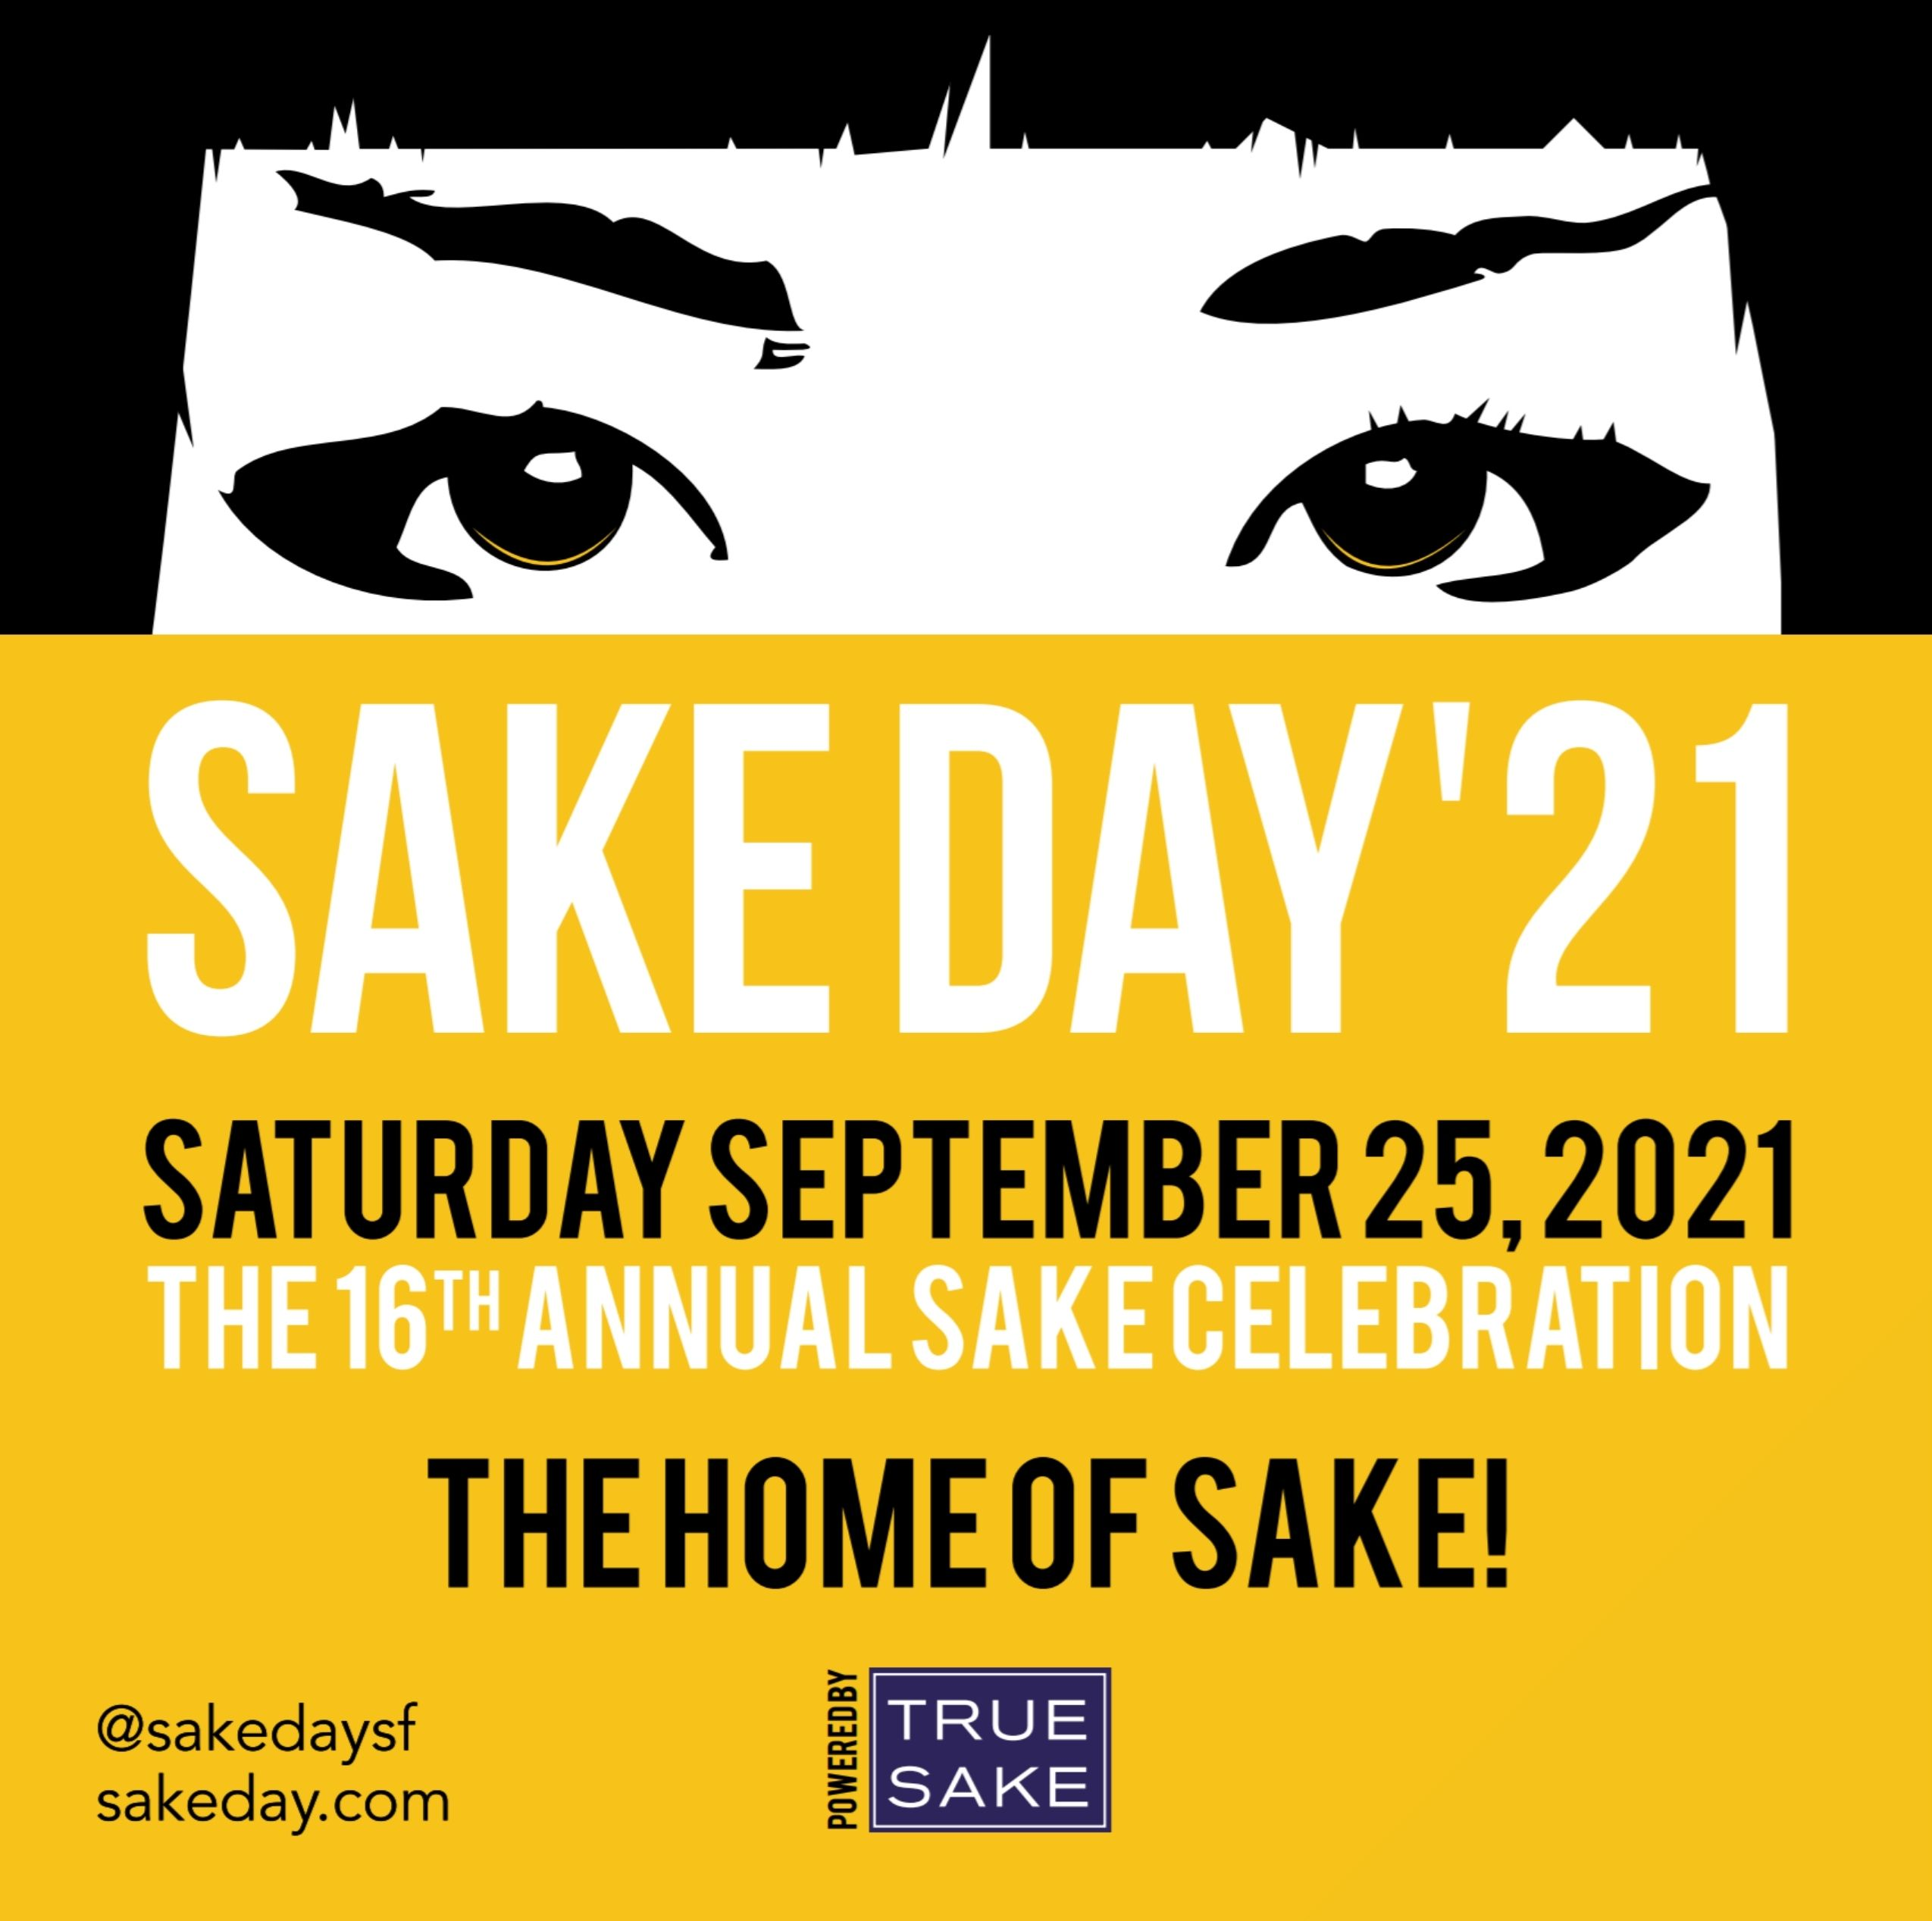 Sake Day Tickets On Sale Now